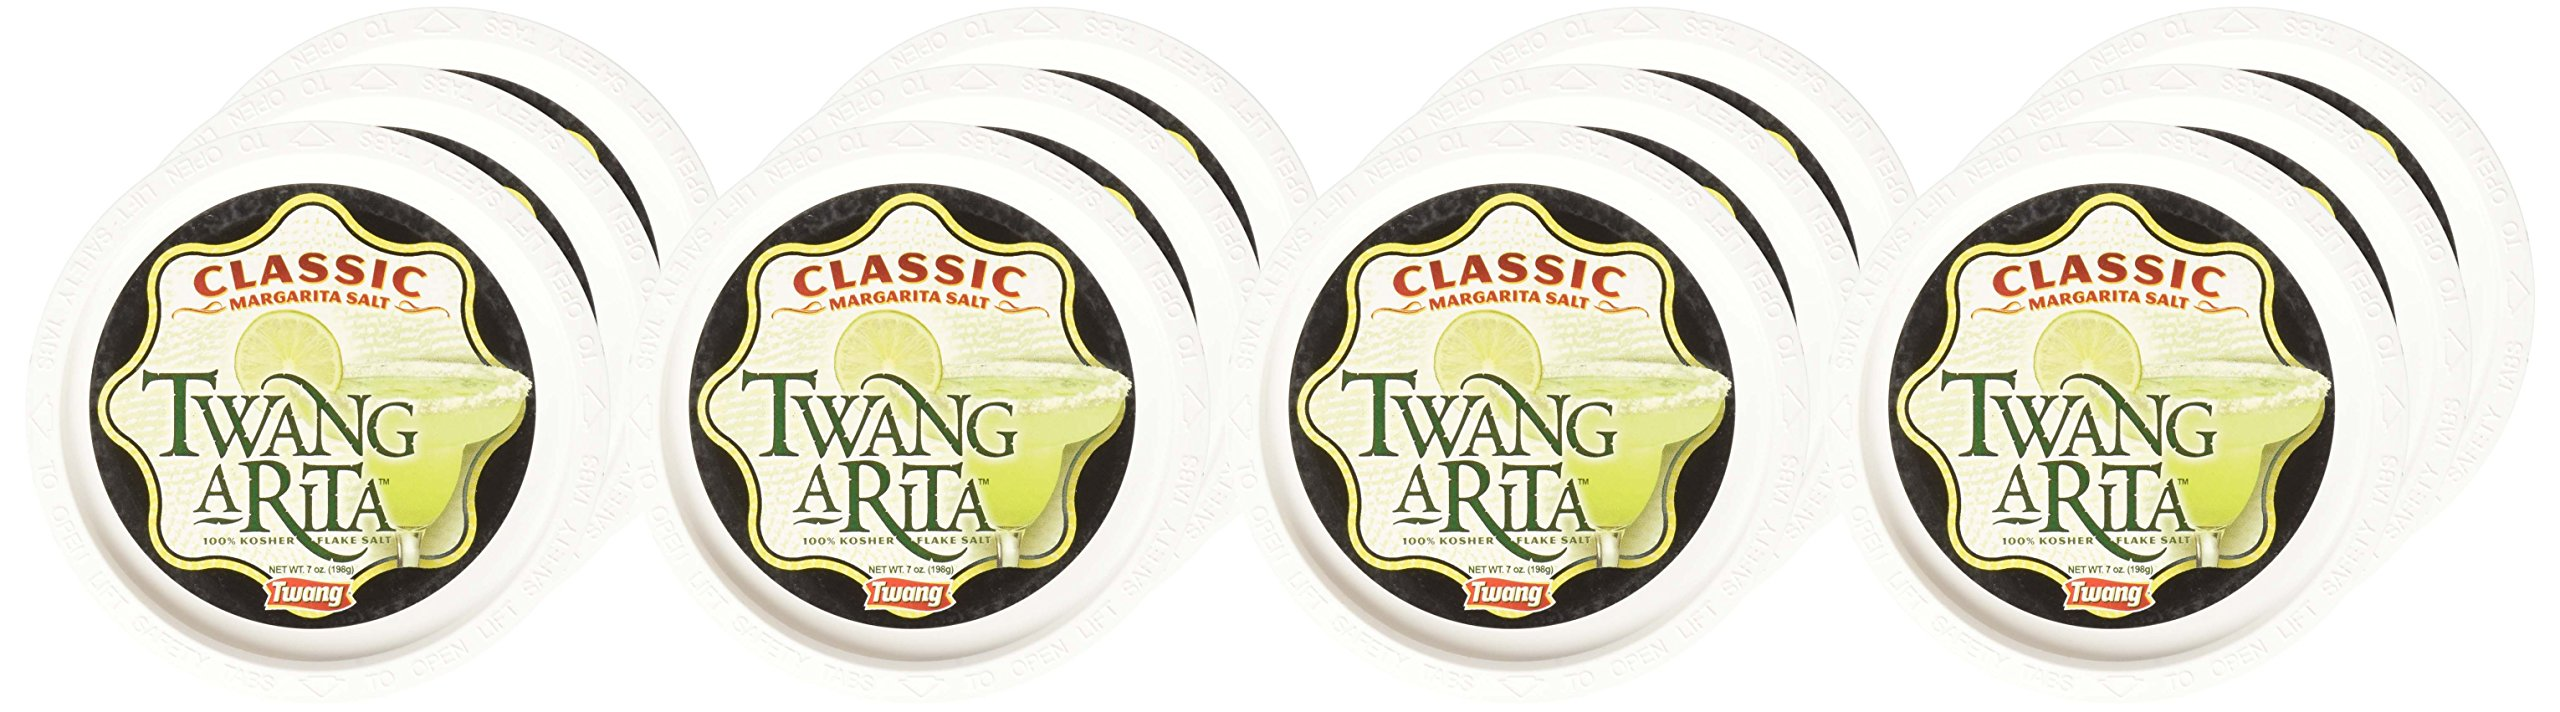 Twang-A-Rita, Classic Margarita Salt, 6-Ounce Tub (Pack of 12) by Twang (Image #2)